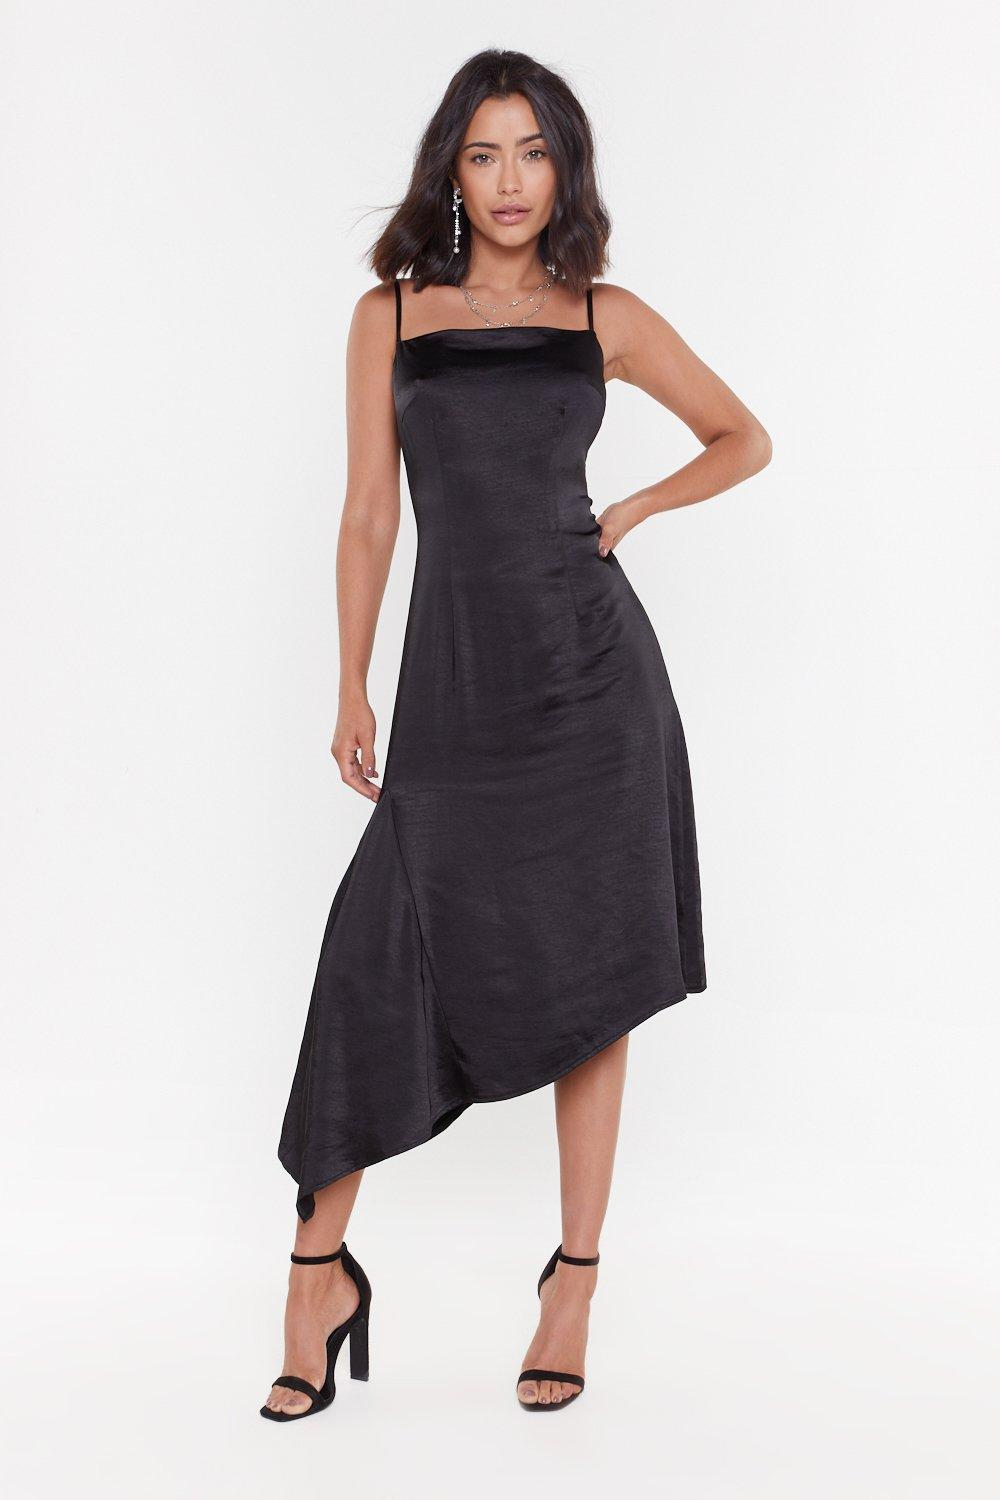 7ed9d7887 It's All Satin-ing Aysmmetric Midi Dress | Shop Clothes at Nasty Gal!